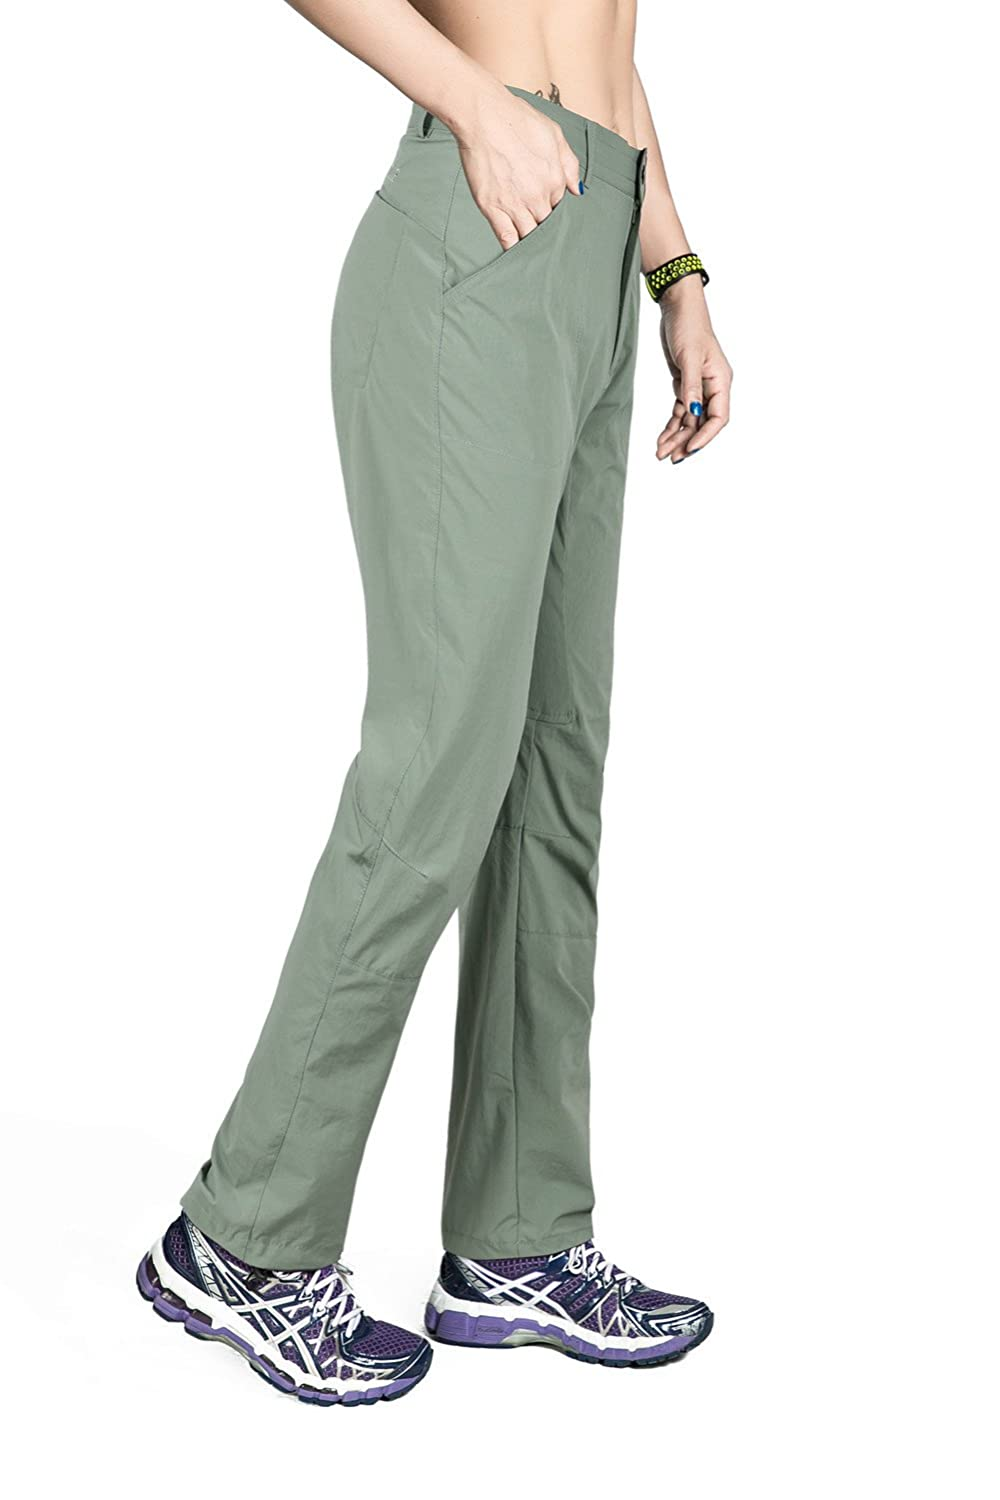 Nonwe Womens Outdoor Quick Dry Lightweight Hiking Cargo Pants